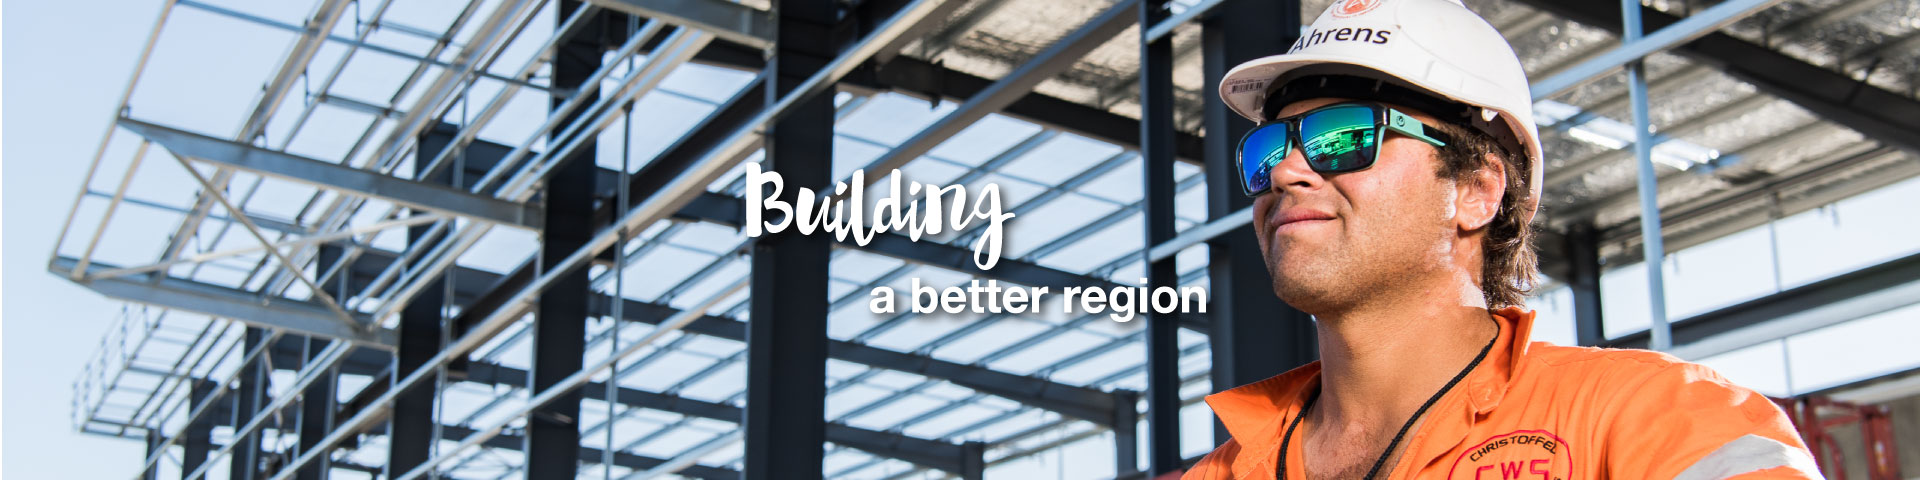 Building a better region